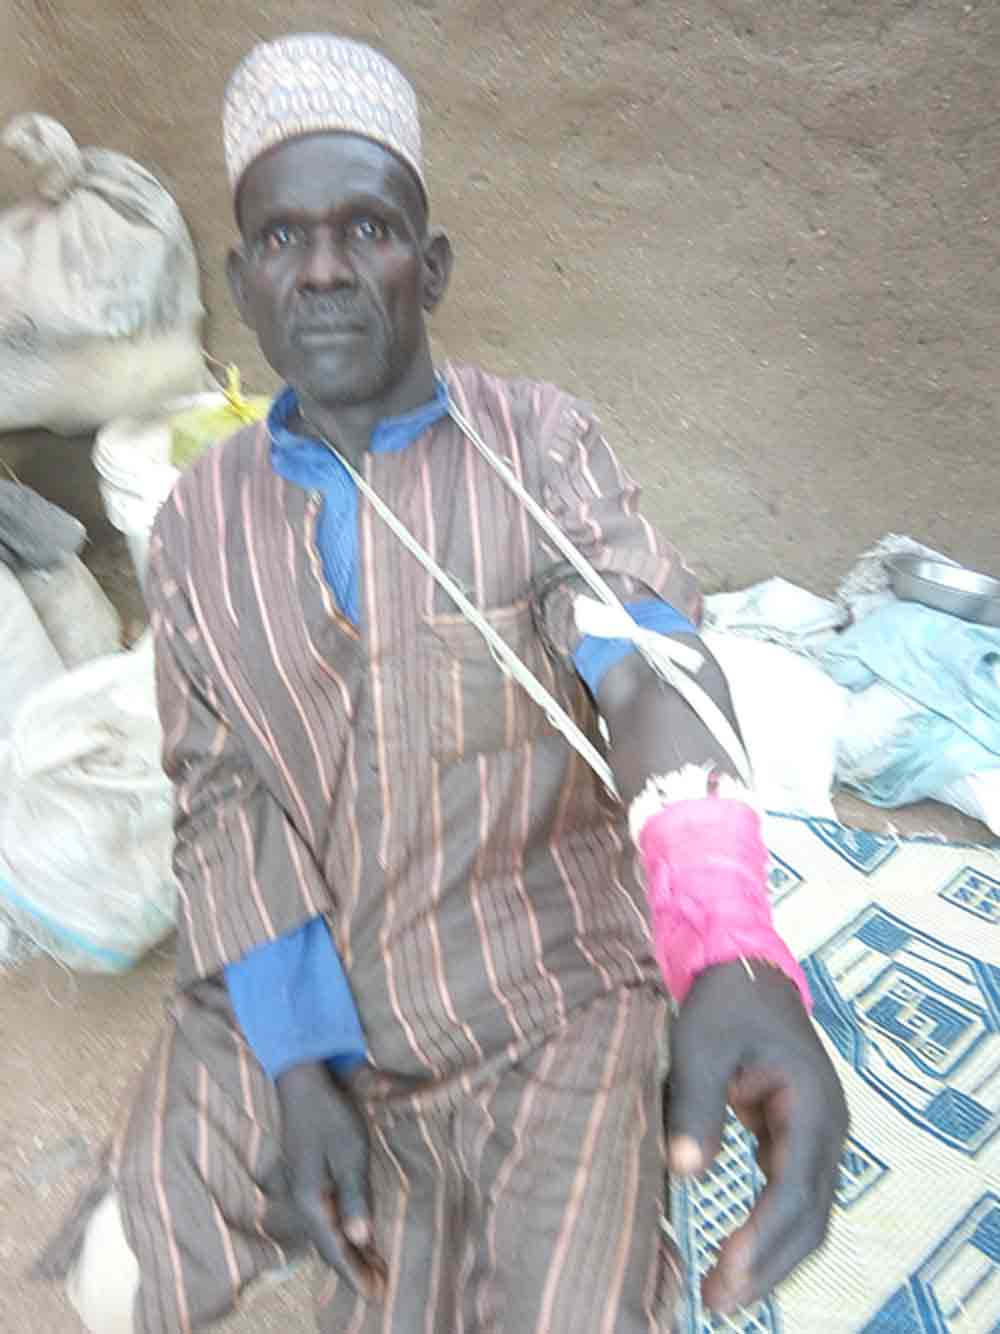 This pastor was injured as he fended off attackers.